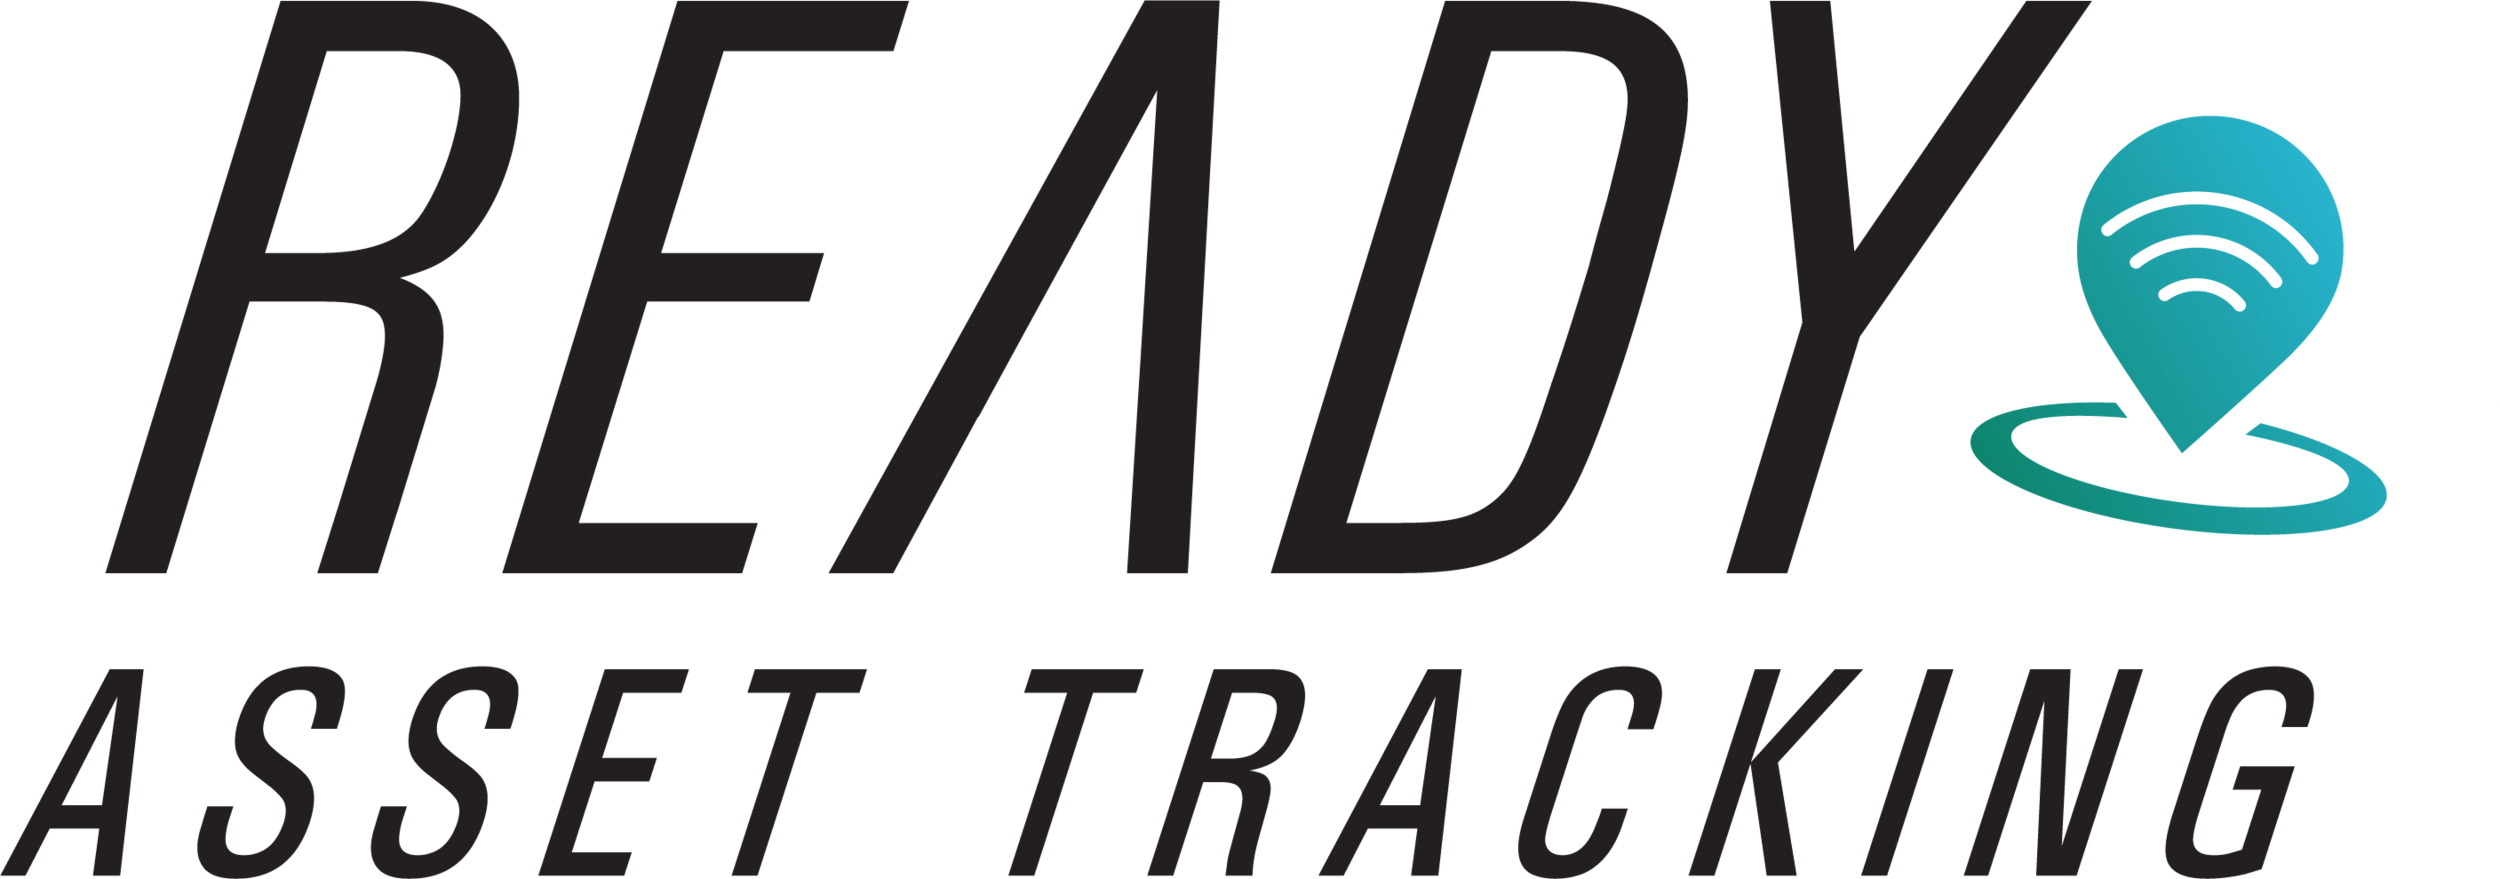 Ready Asset Tracking logo